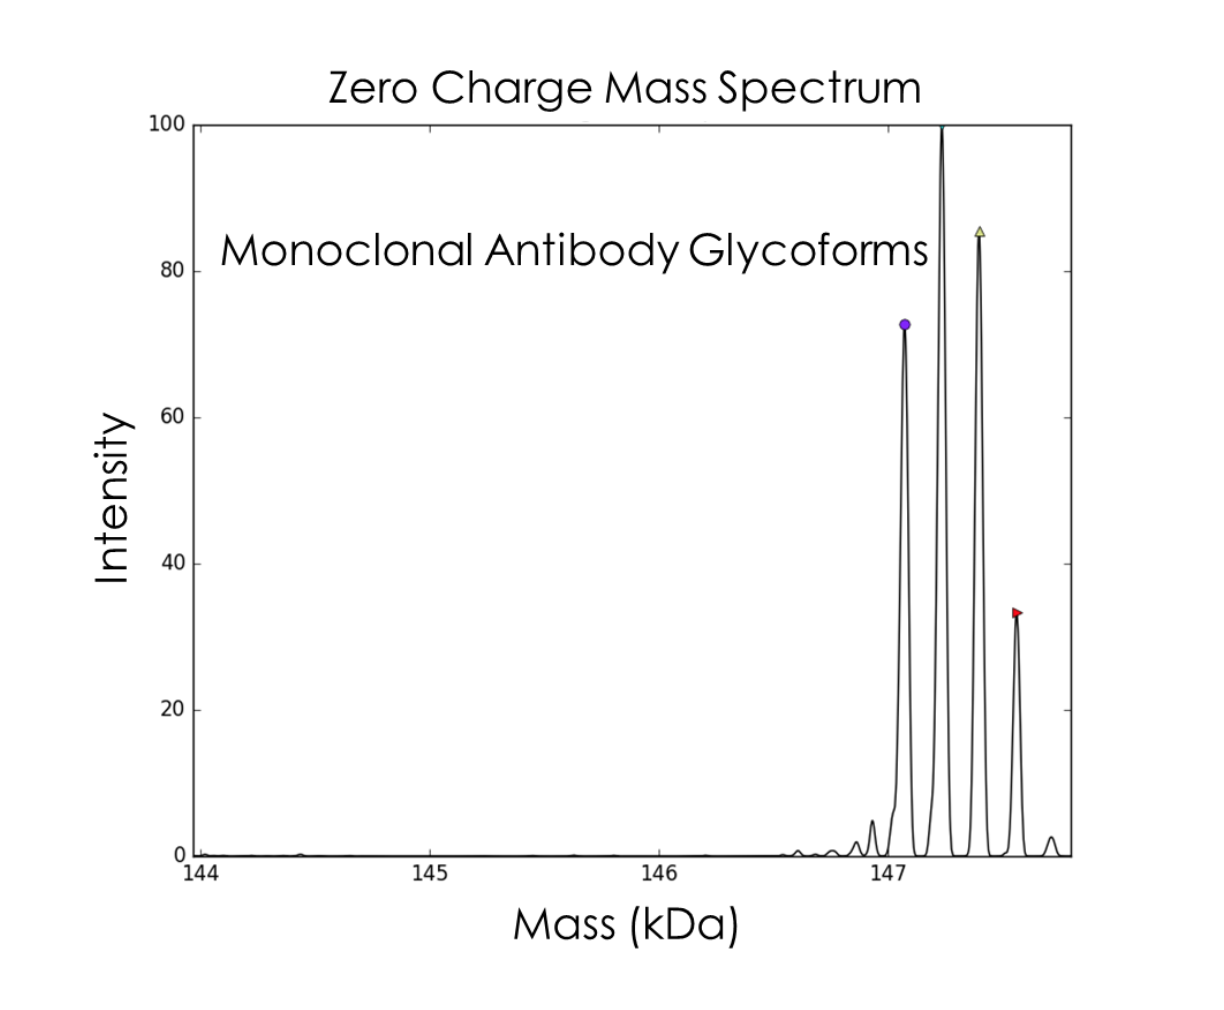 Protein analysis and characterization spectrometer chart - Intact analysis of glycoforms and protein alone, heavy and light chain